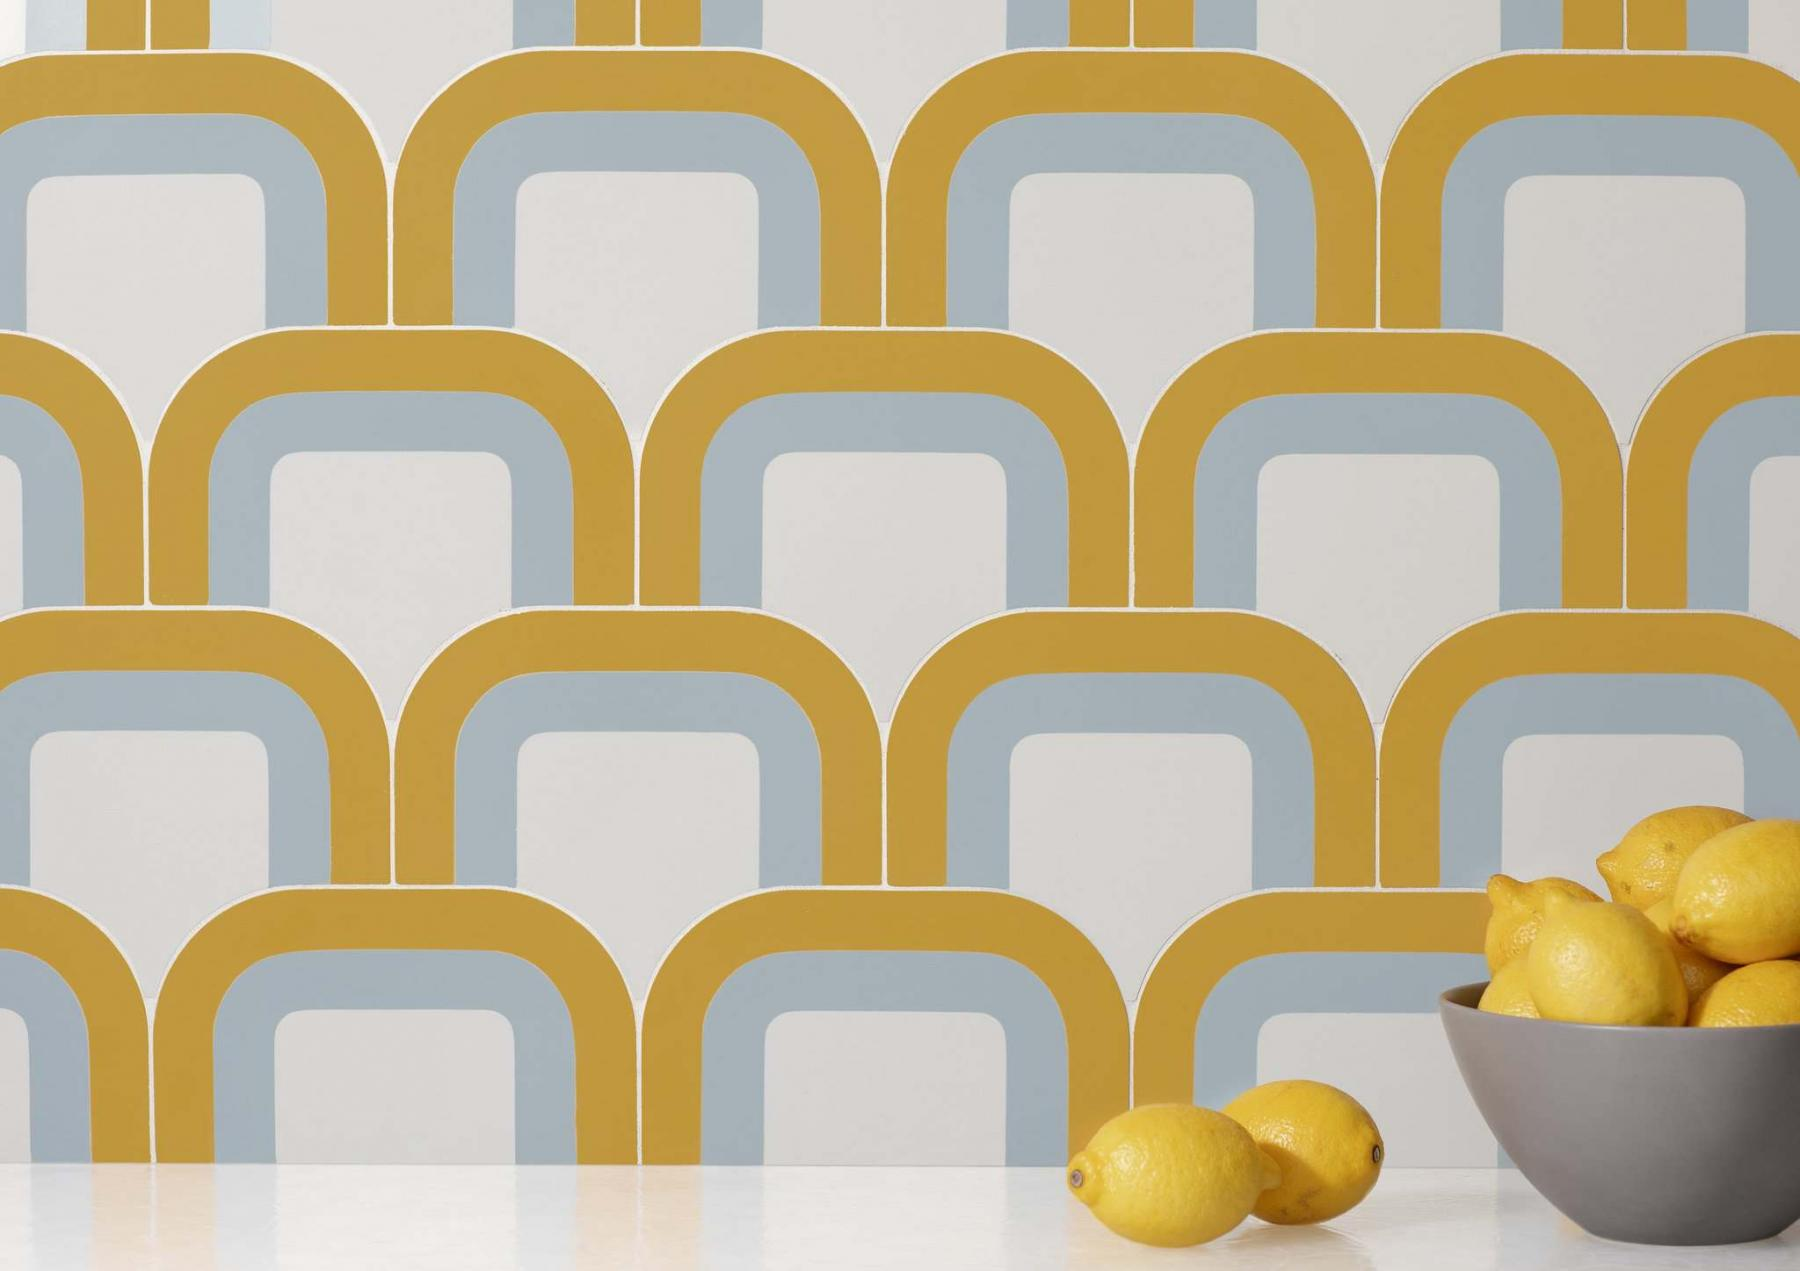 <p>Walker Zanger / The Associated Press Files </p><p>Tile by Australian designer Pietta Donovan, who has created a hip collection of cement tile inspired by the kaleidoscopic shapes, curvy profiles and distinct colorways of '70s wallpaper.</p>